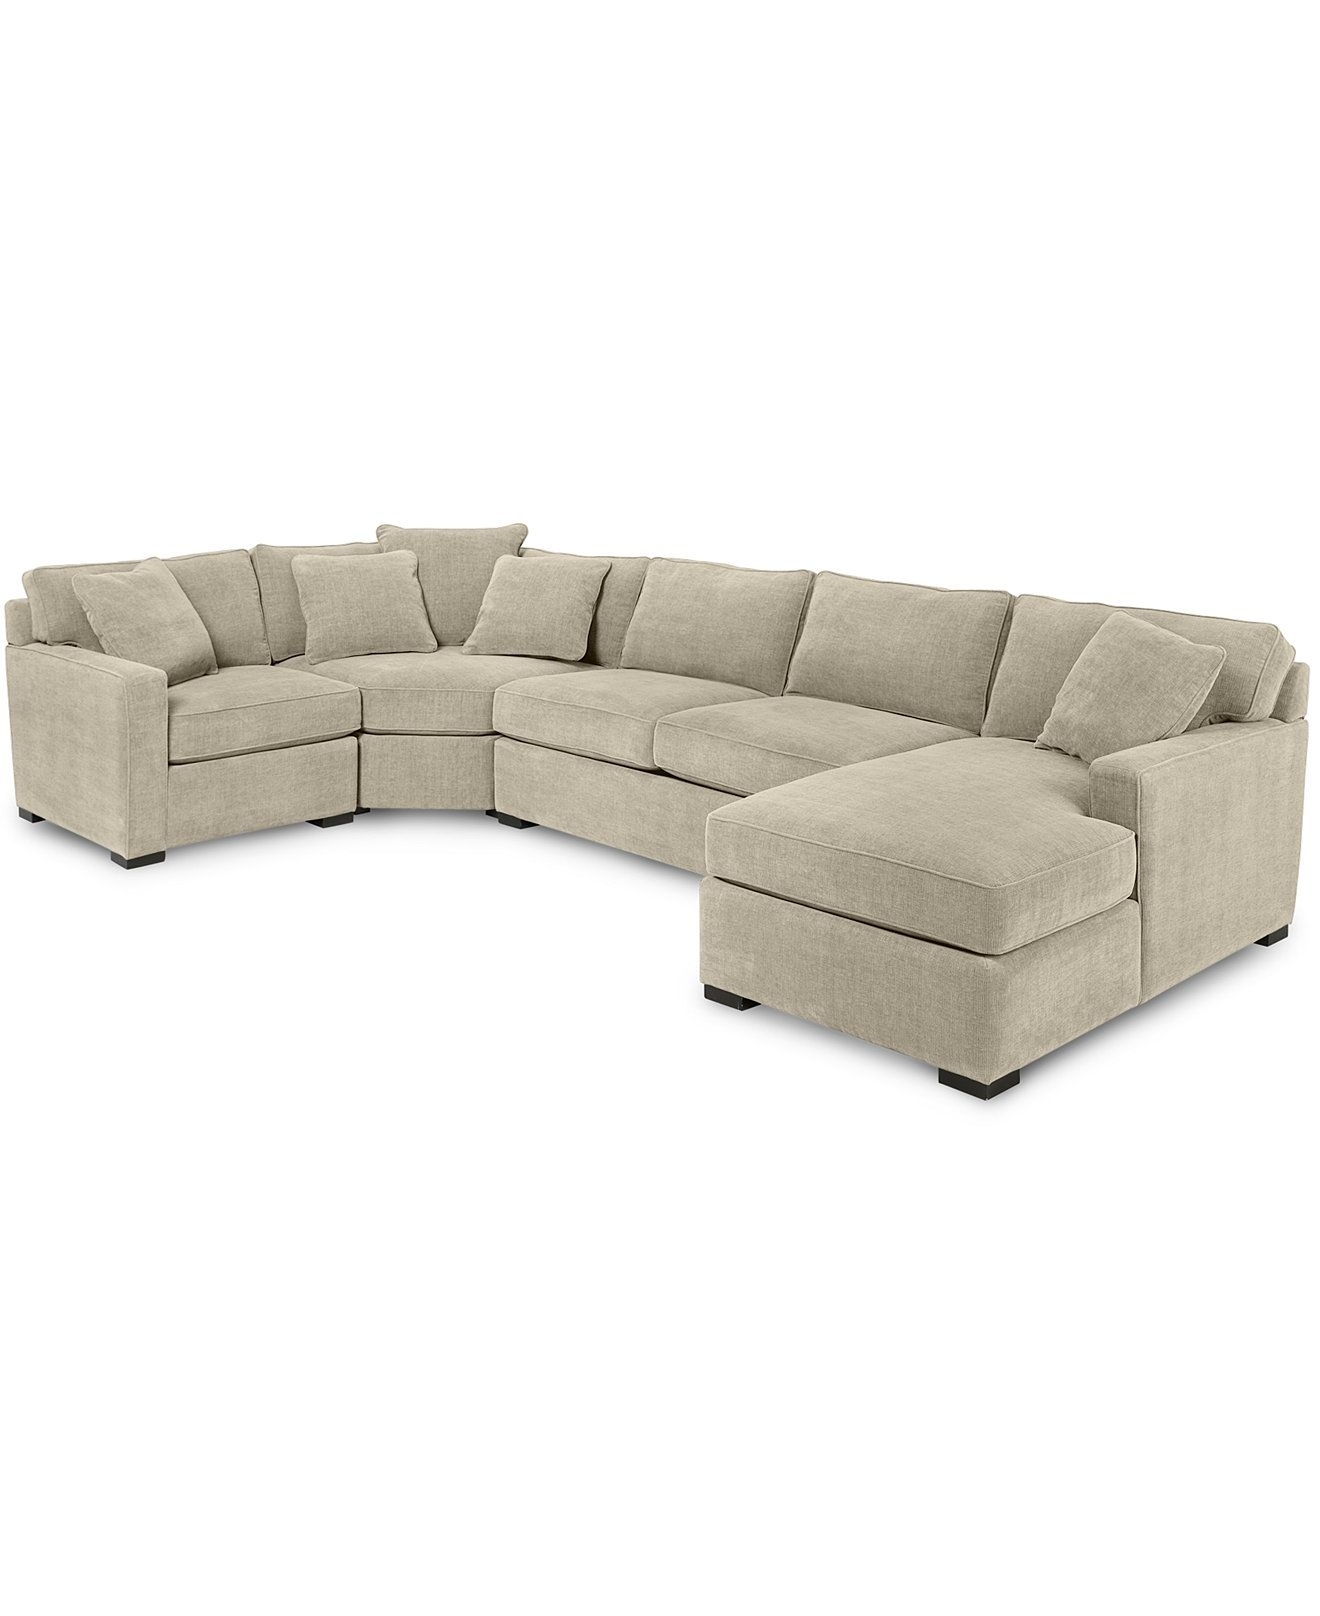 Radley 4-Piece Fabric Chaise Sectional Sofa, Created For Macy's pertaining to Norfolk Chocolate 3 Piece Sectionals With Raf Chaise (Image 23 of 30)